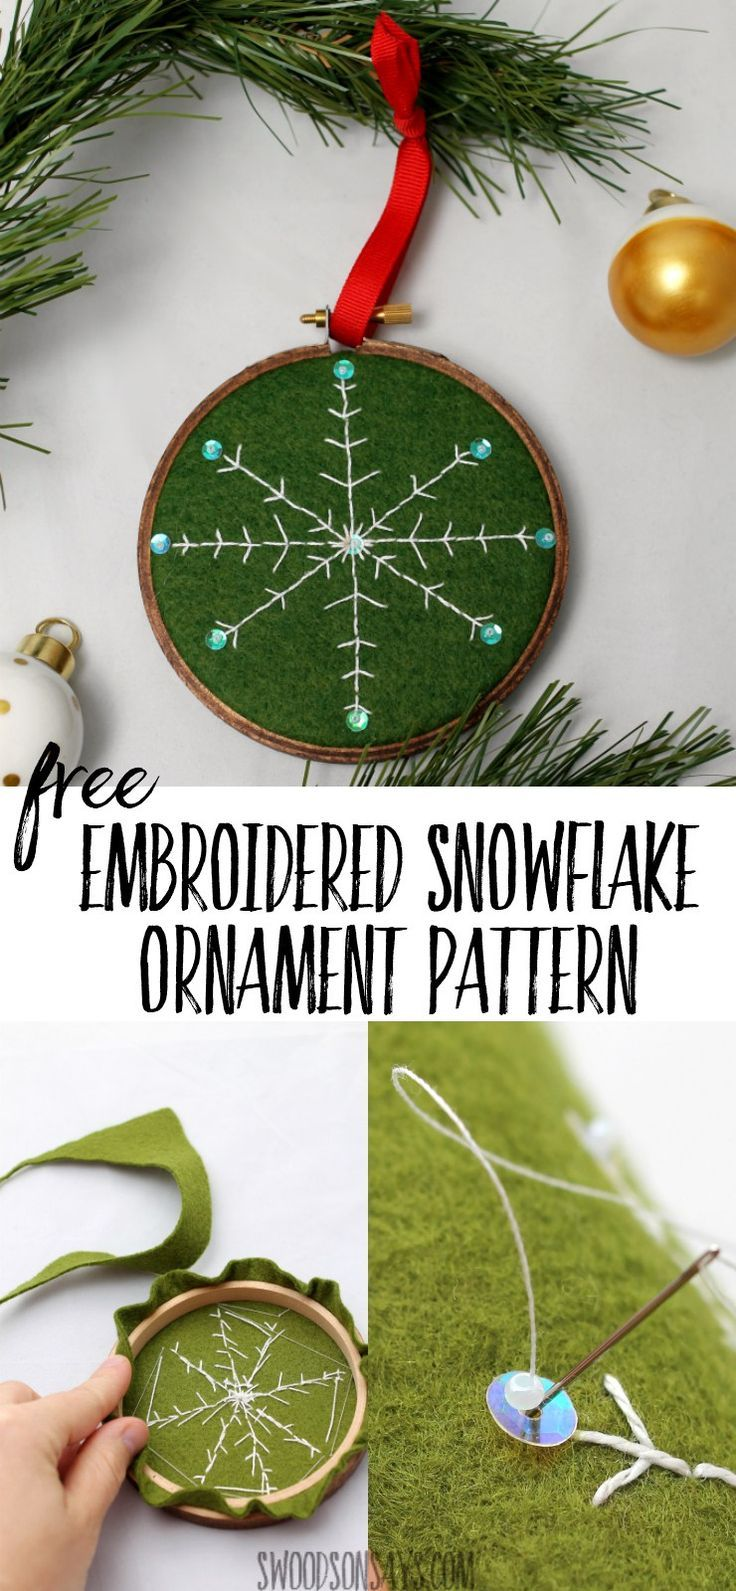 Free Snowflake Embroidery Pattern Ornament Tutorial Snowflakes Embroidery Pattern Snowflake Embroidery Diy Christmas Ornaments